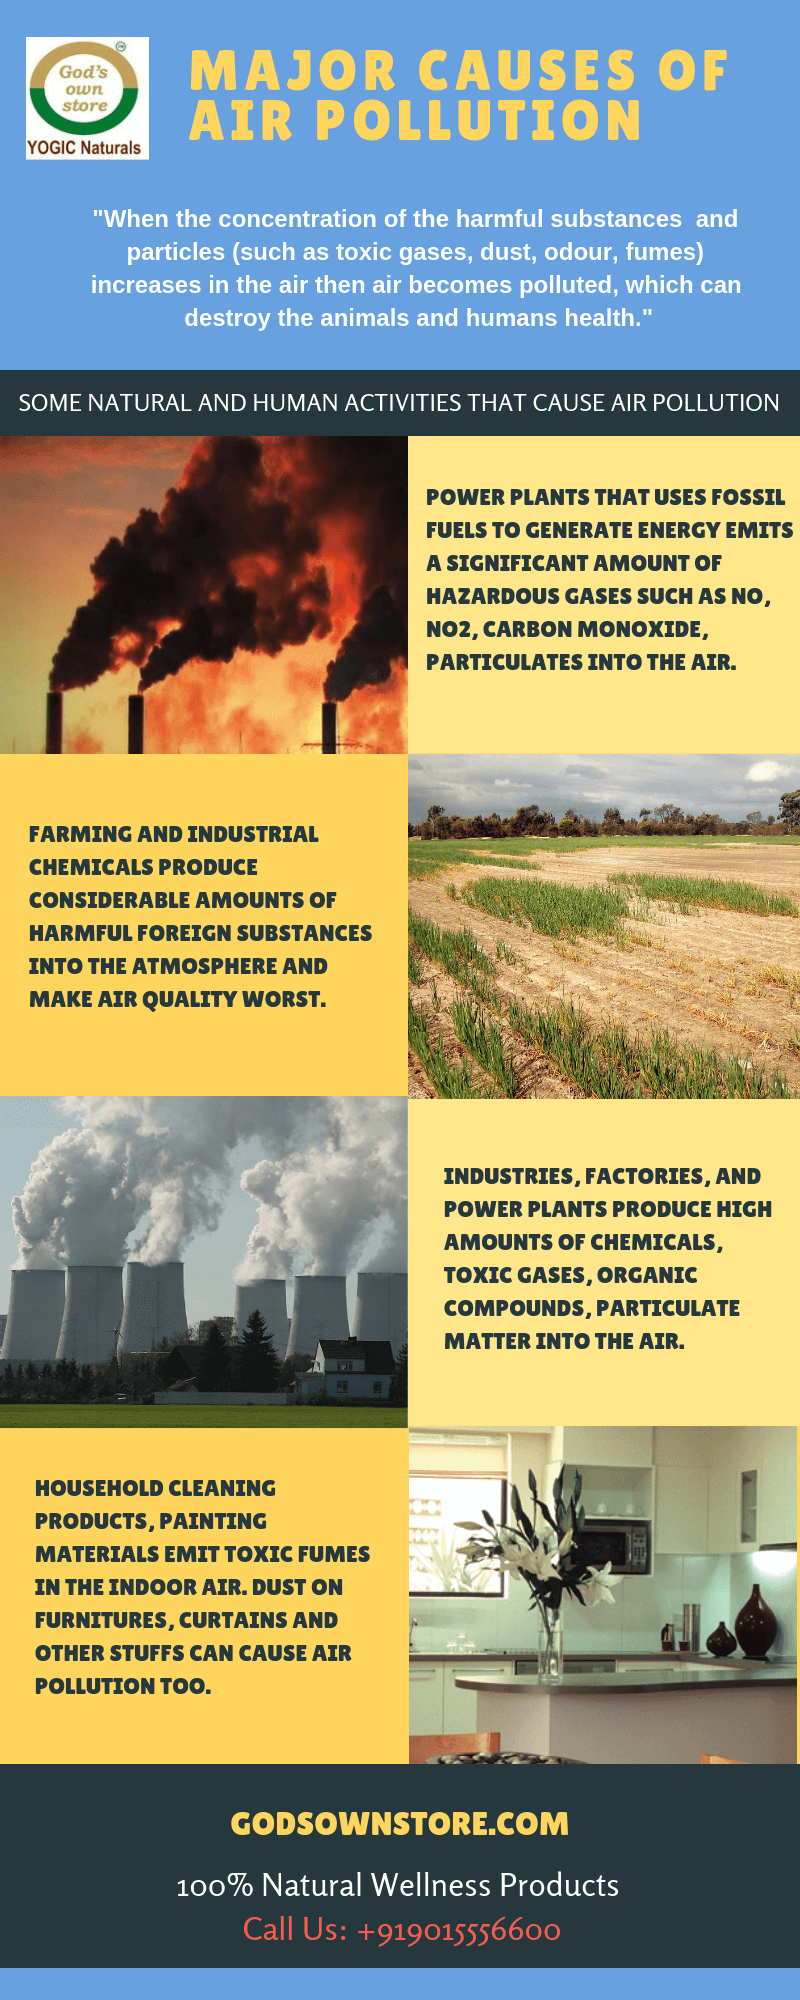 Causes-of-Air-Pollutions-infographic-plaza